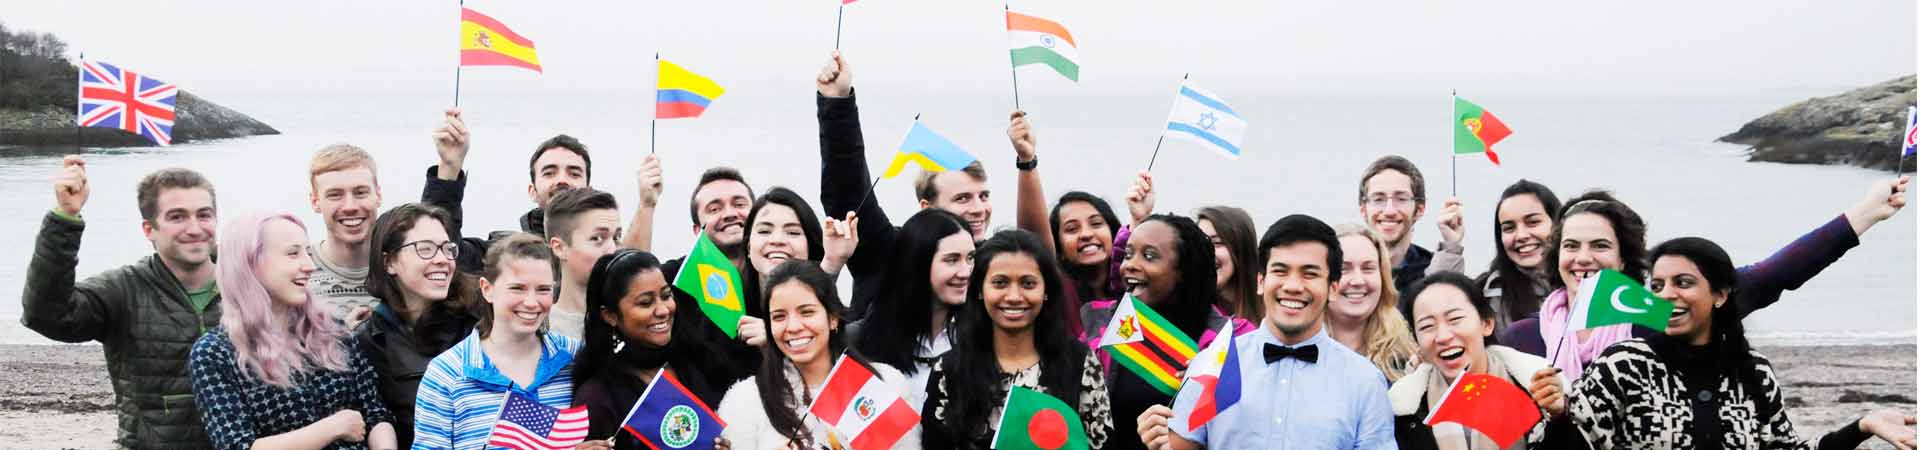 A group of international students waving flags showing their nationalities.